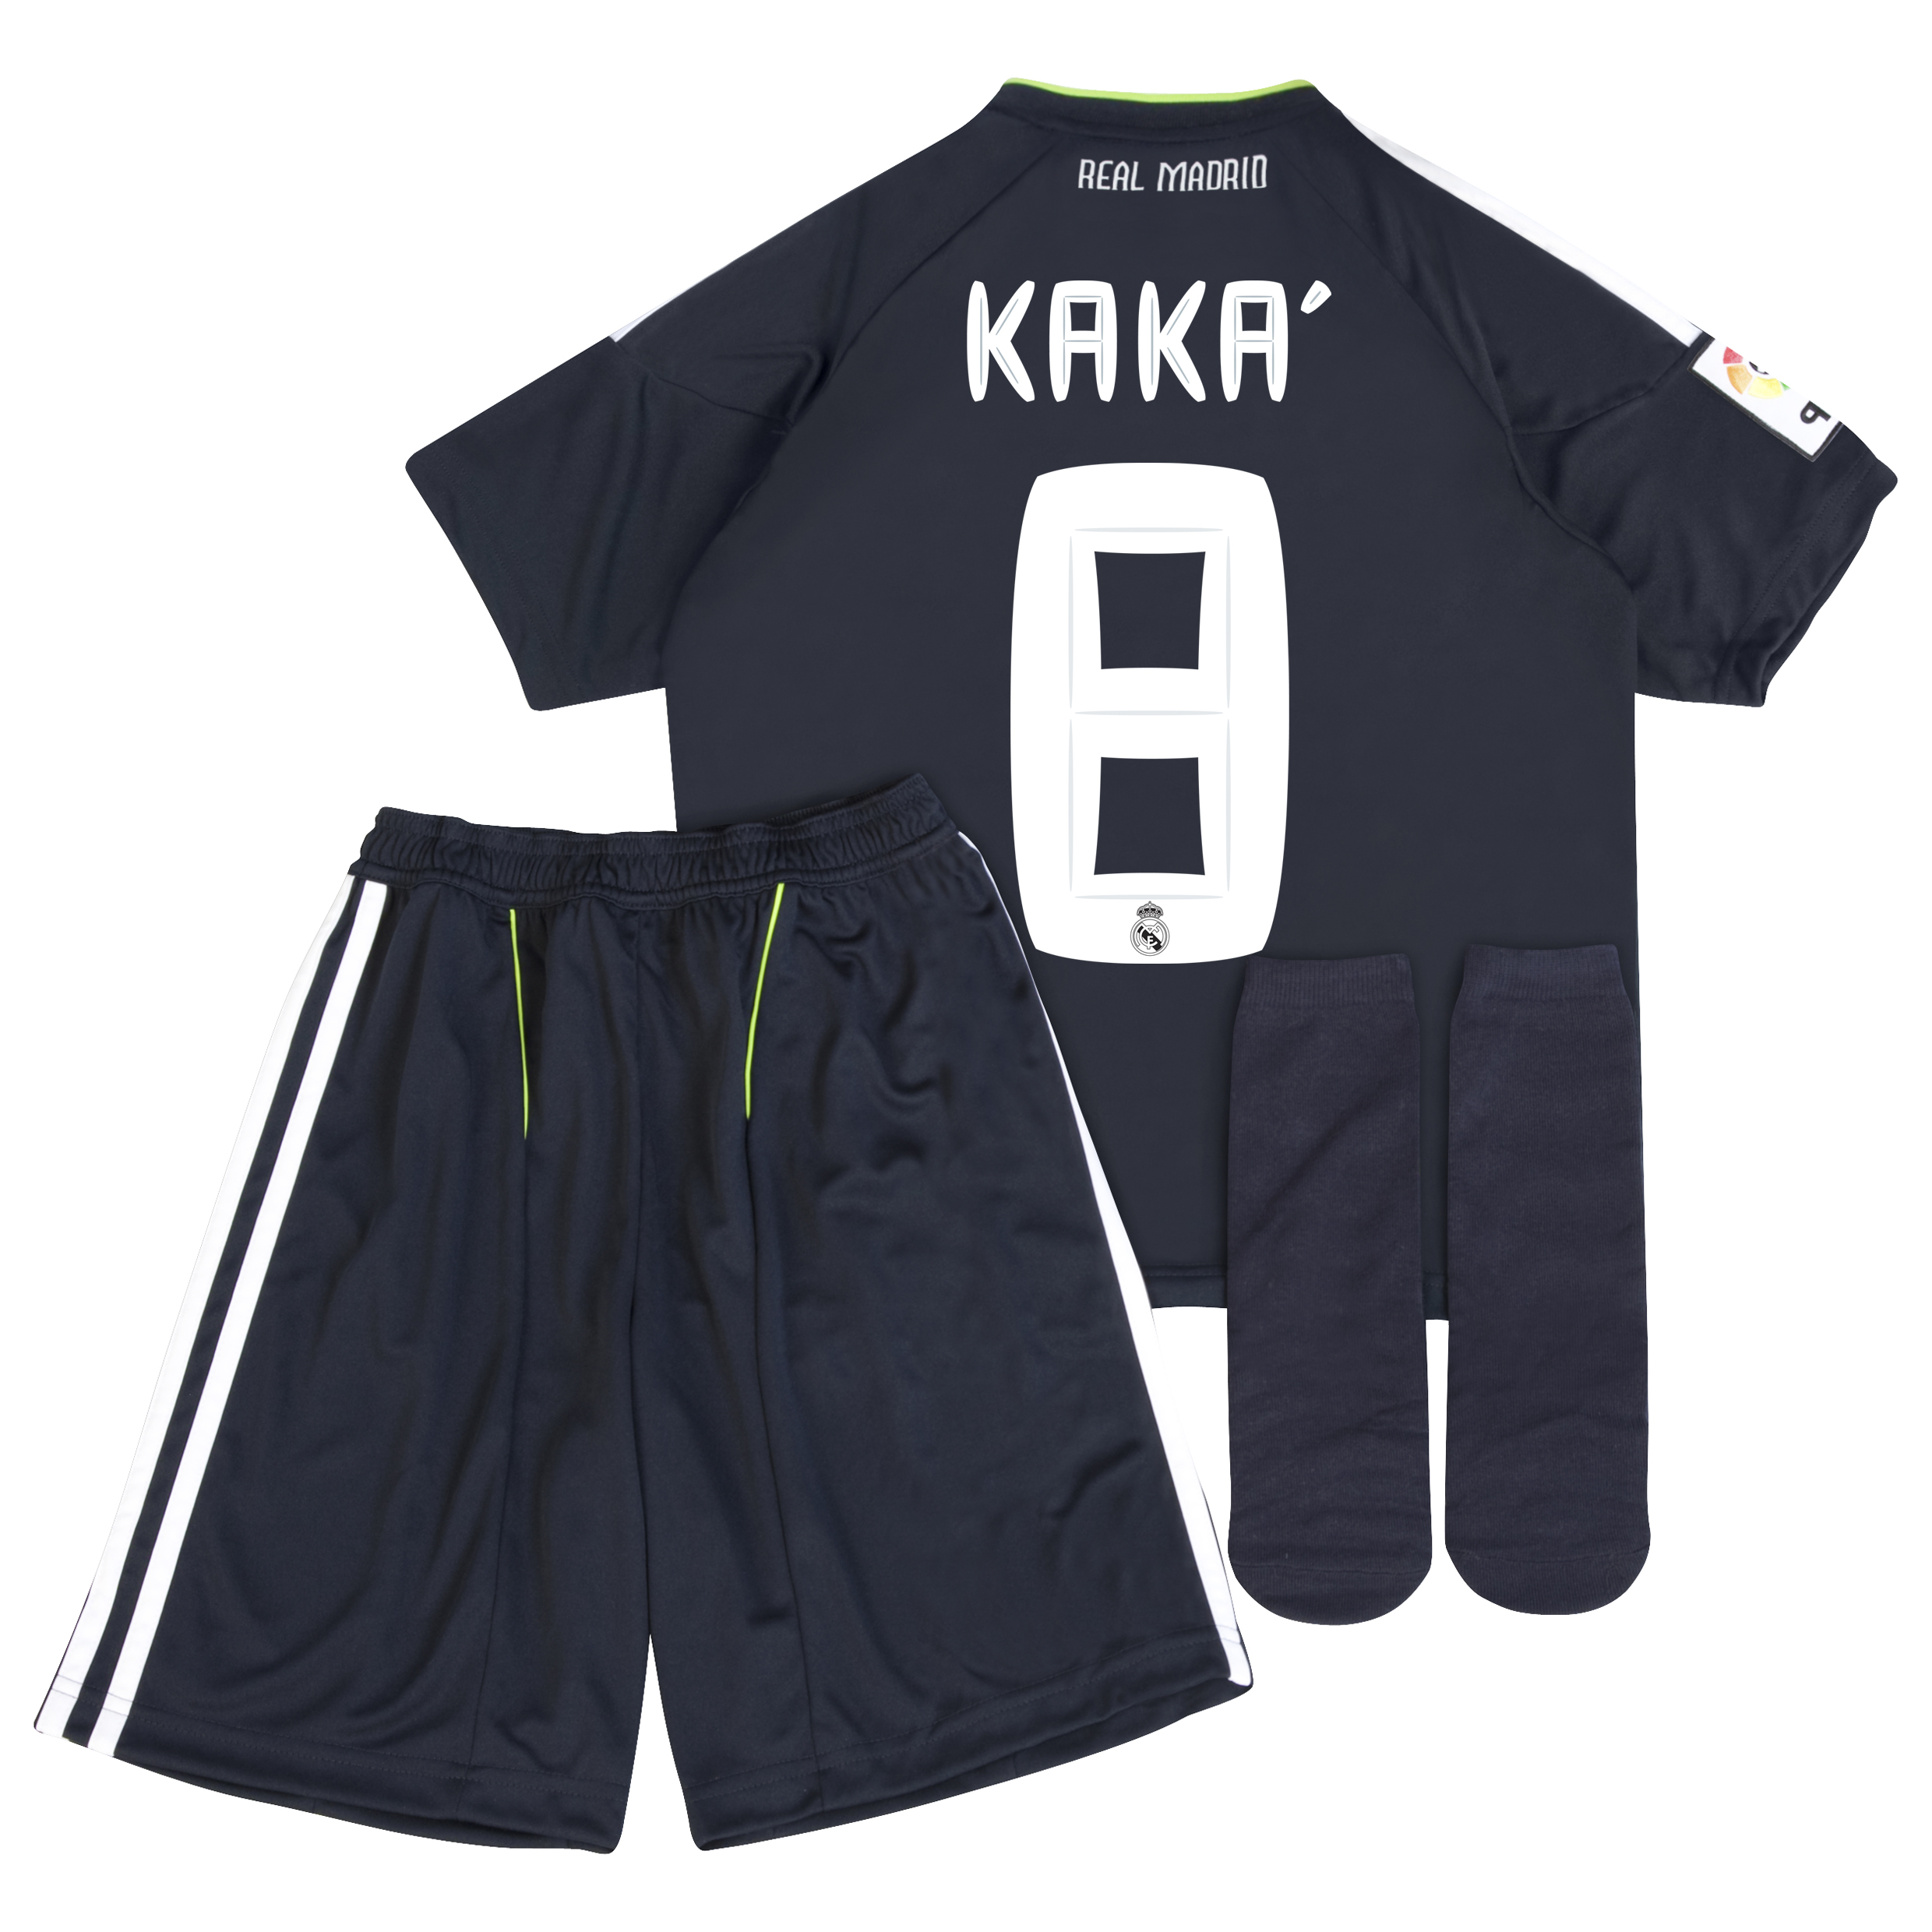 Real Madrid Away Minikit Pack 2010/11 with Kaka 8 printing